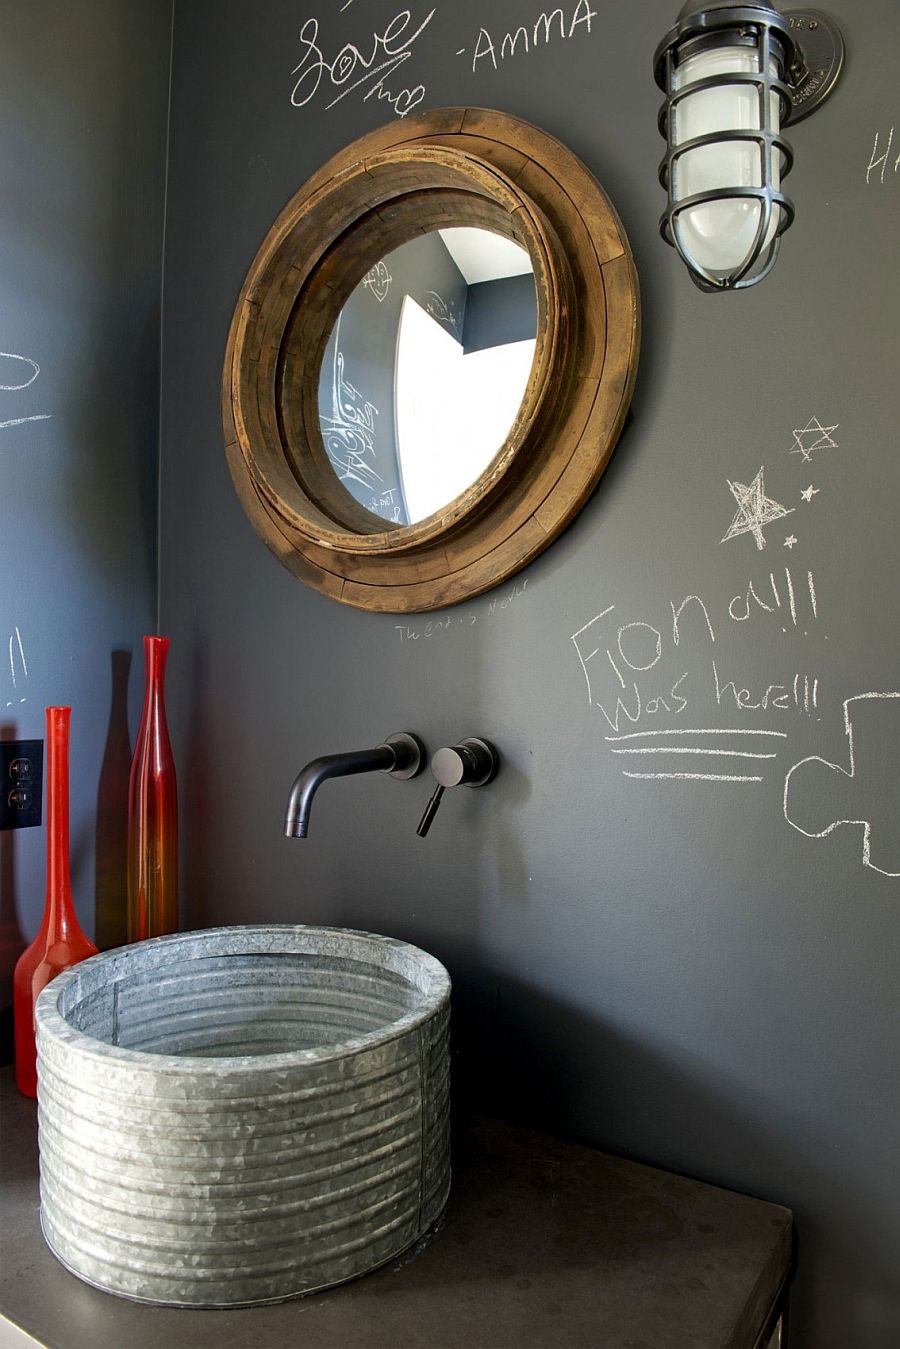 Unique mirror and chalkboard wall in the small bathroom